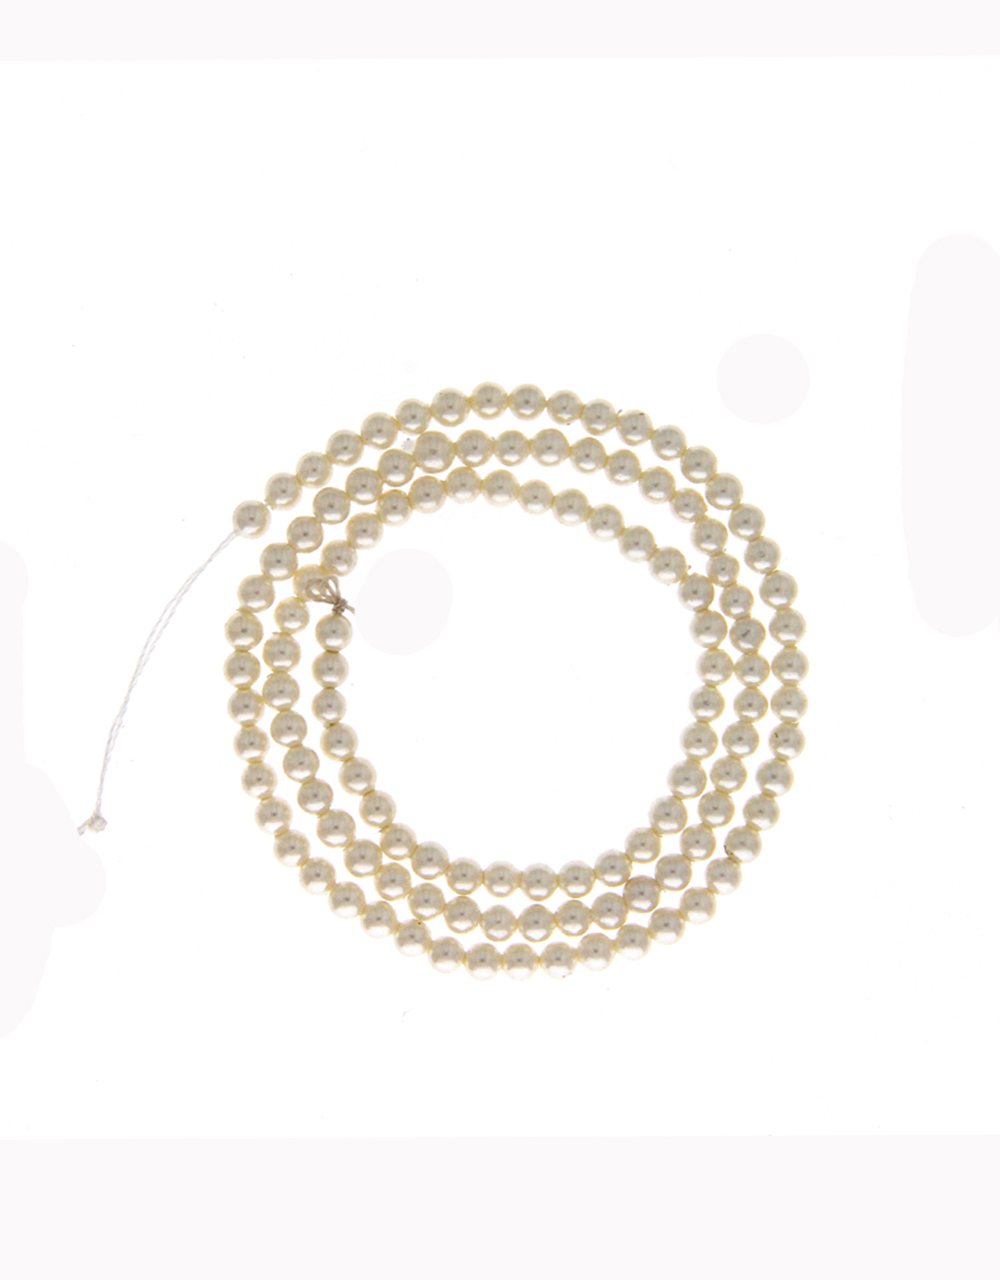 Loose Pearl Chain For Jewellery Making